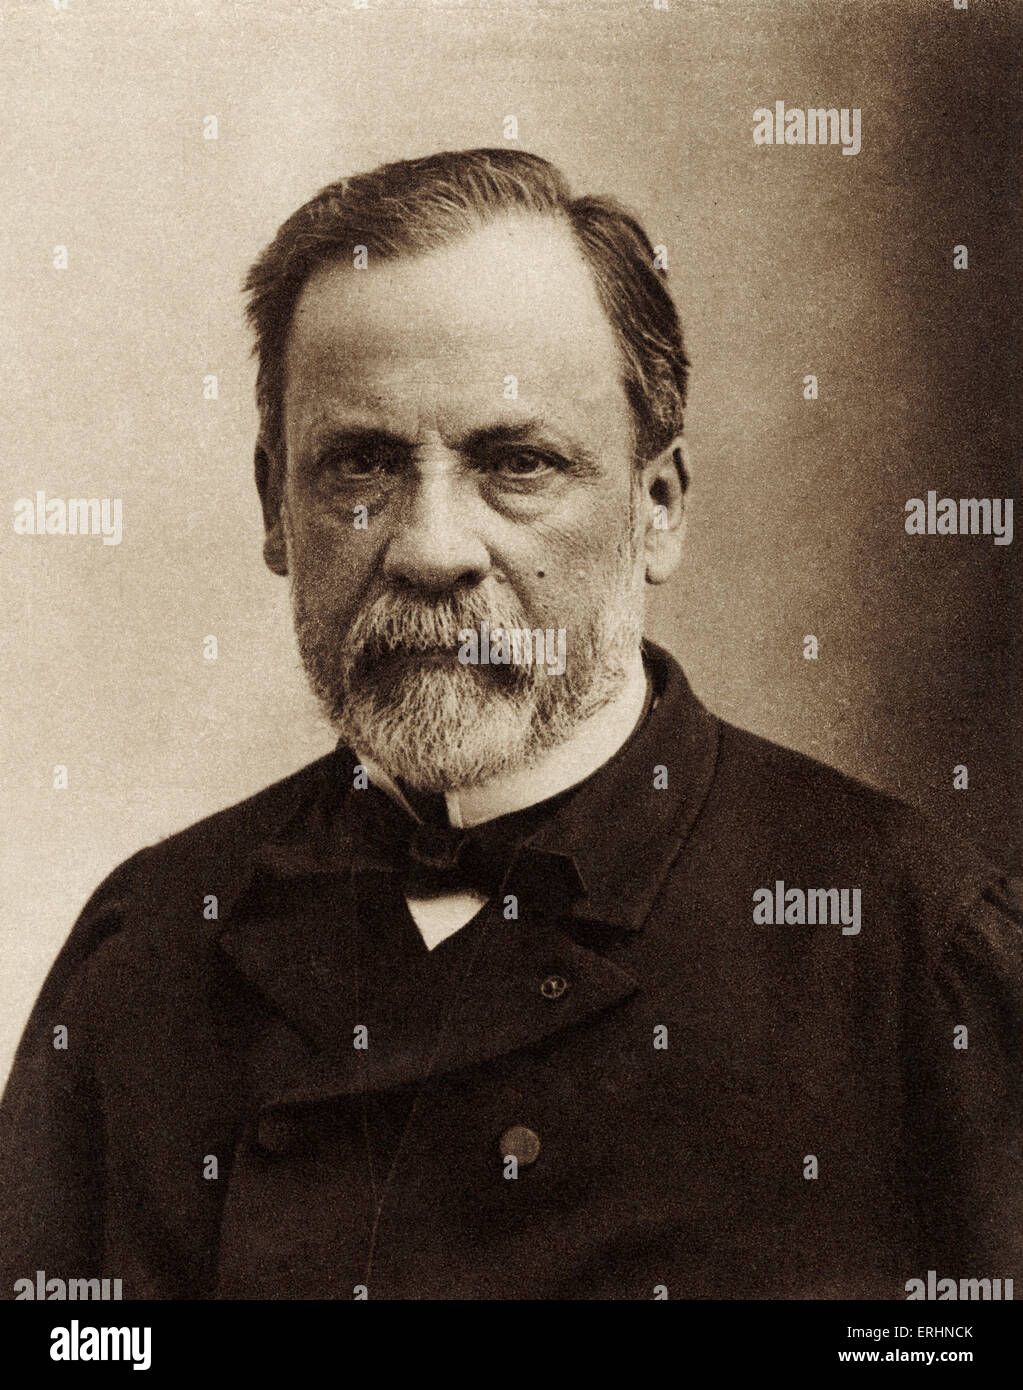 Louis Pasteur - portrait - French chemist, biologist and founder of modern bacteriology -27 December 1822 - 28 September - Stock Image